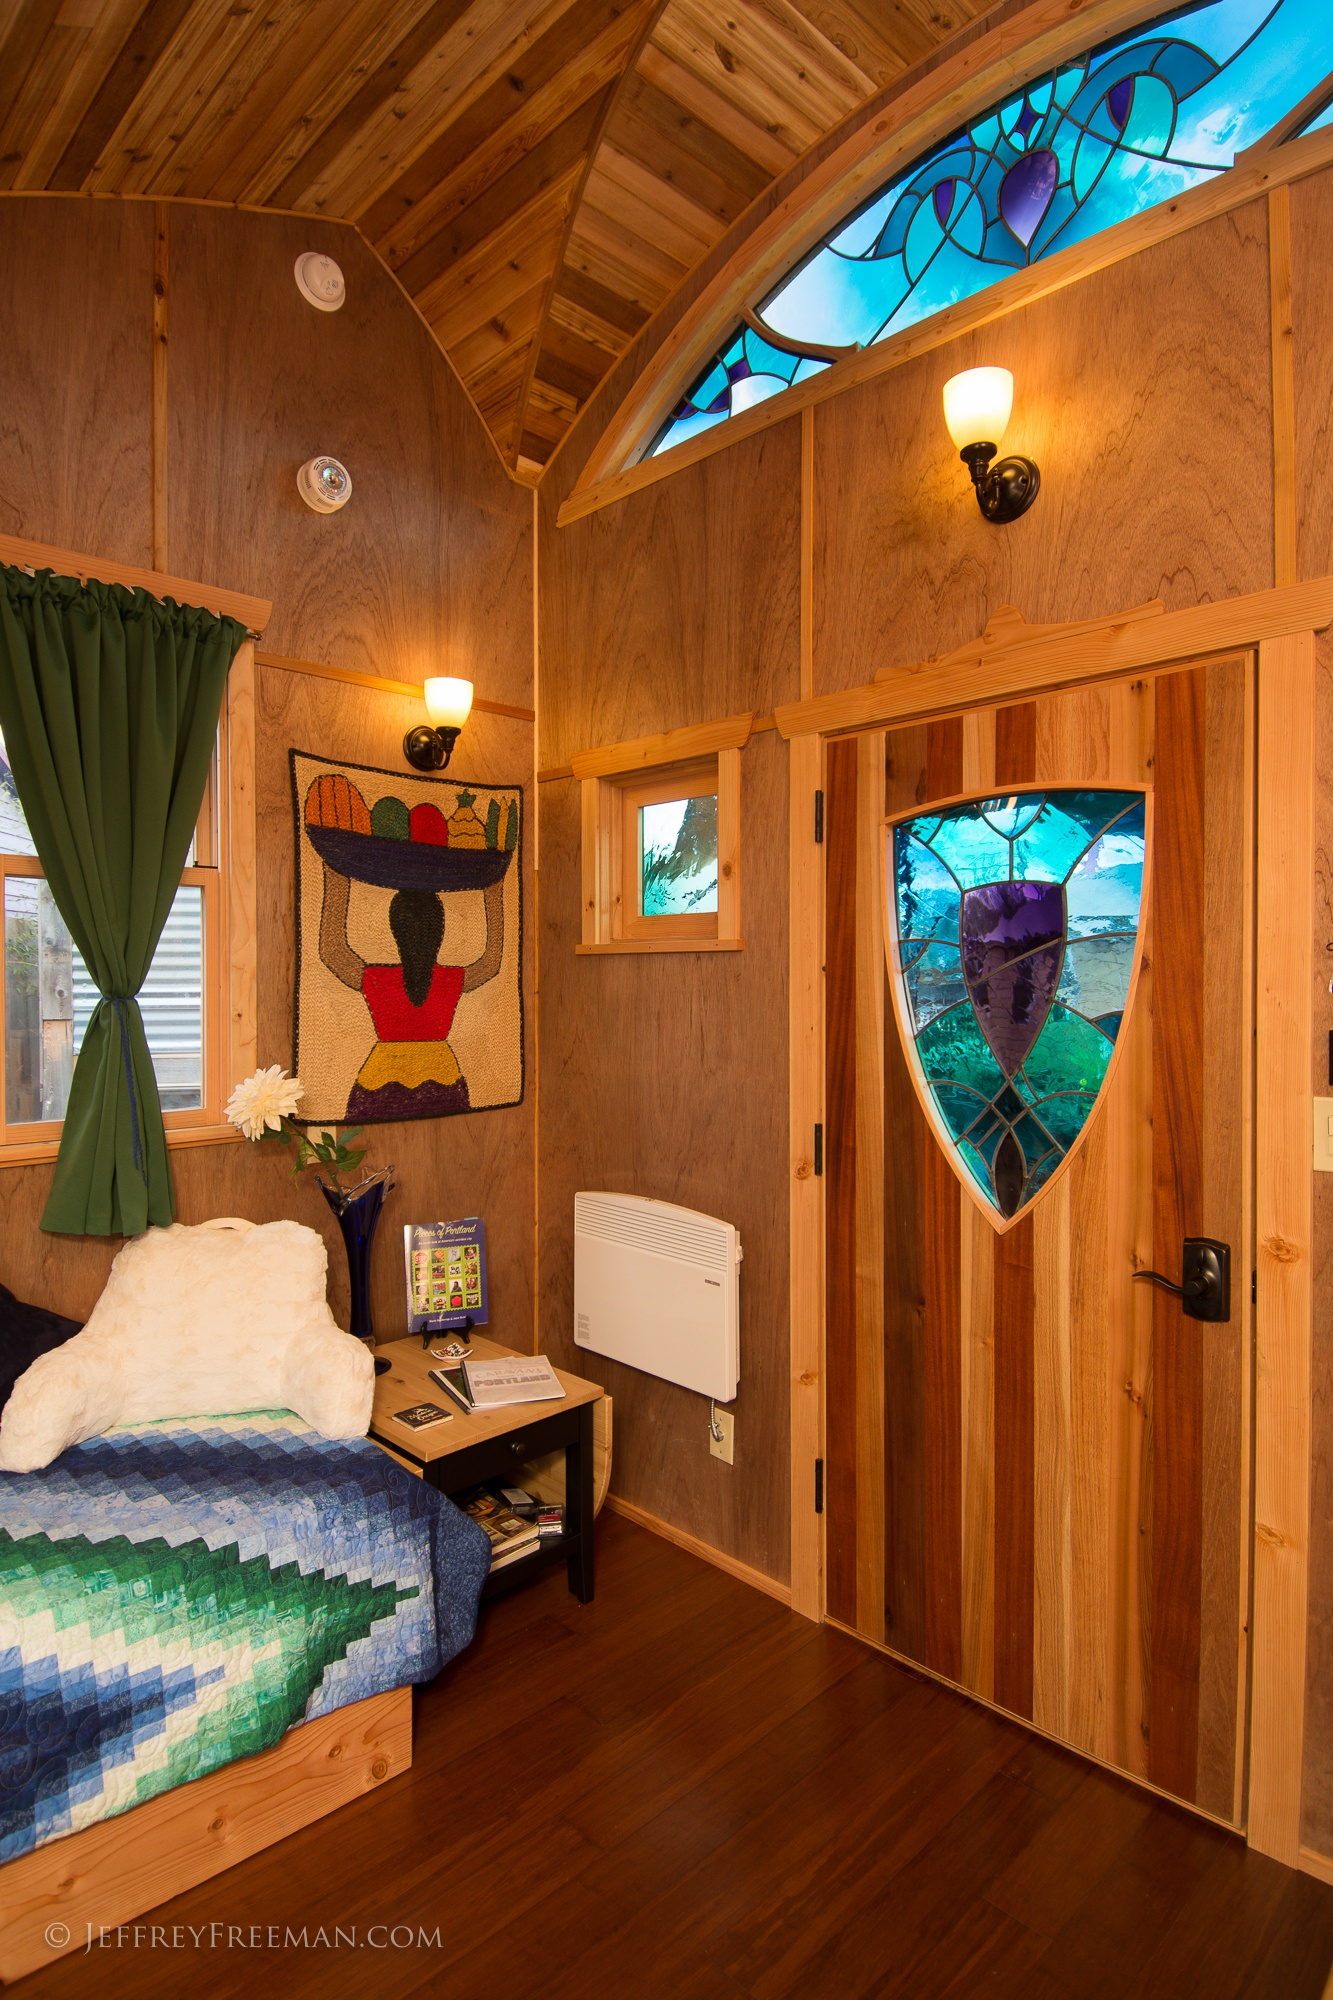 Interior - Pacifica by Zyl Vardos at the Tiny House Hotel